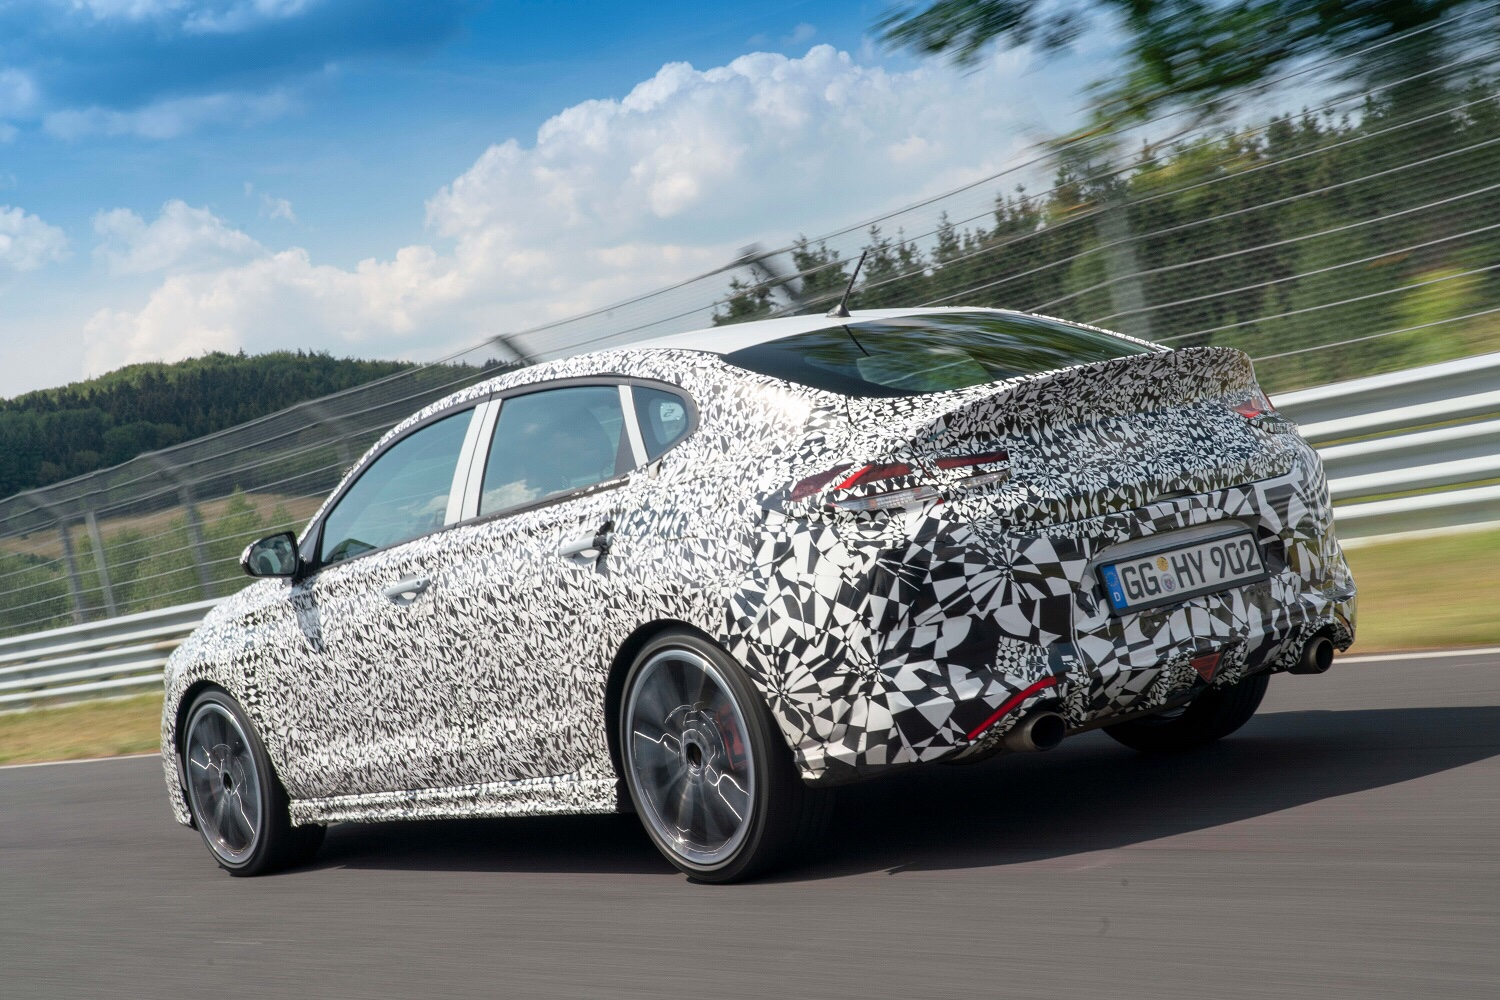 Hyundai i30 Fastback N will Debut Before End of 2018